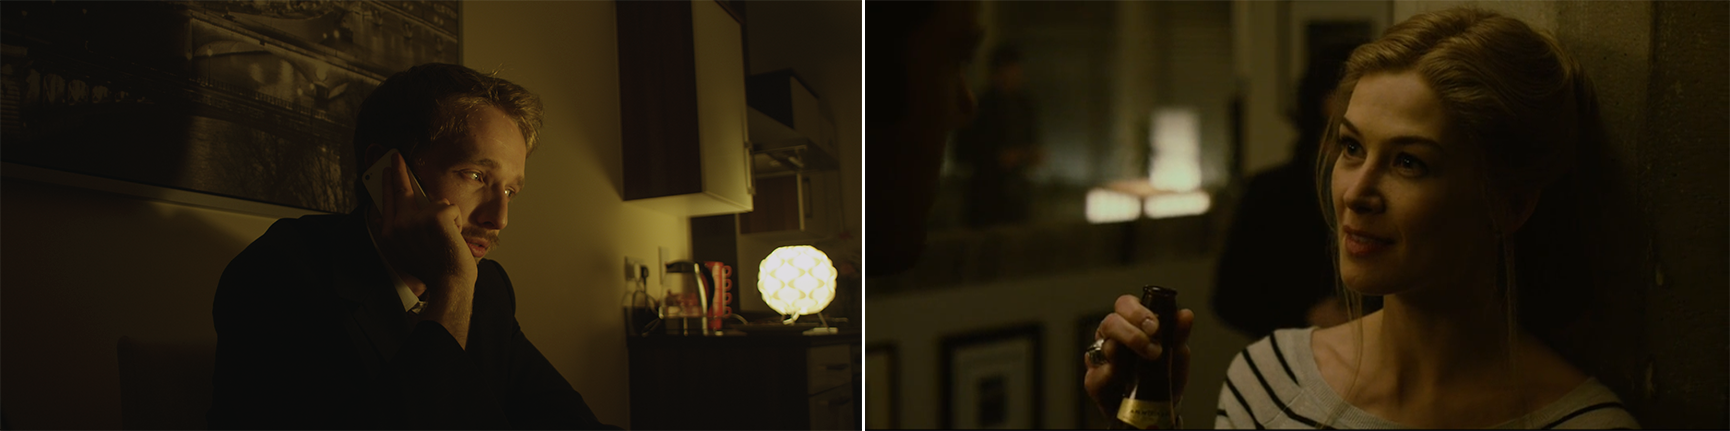 Set Hack: Hollywood Lighting With Simple Household Items - Fincher comparison